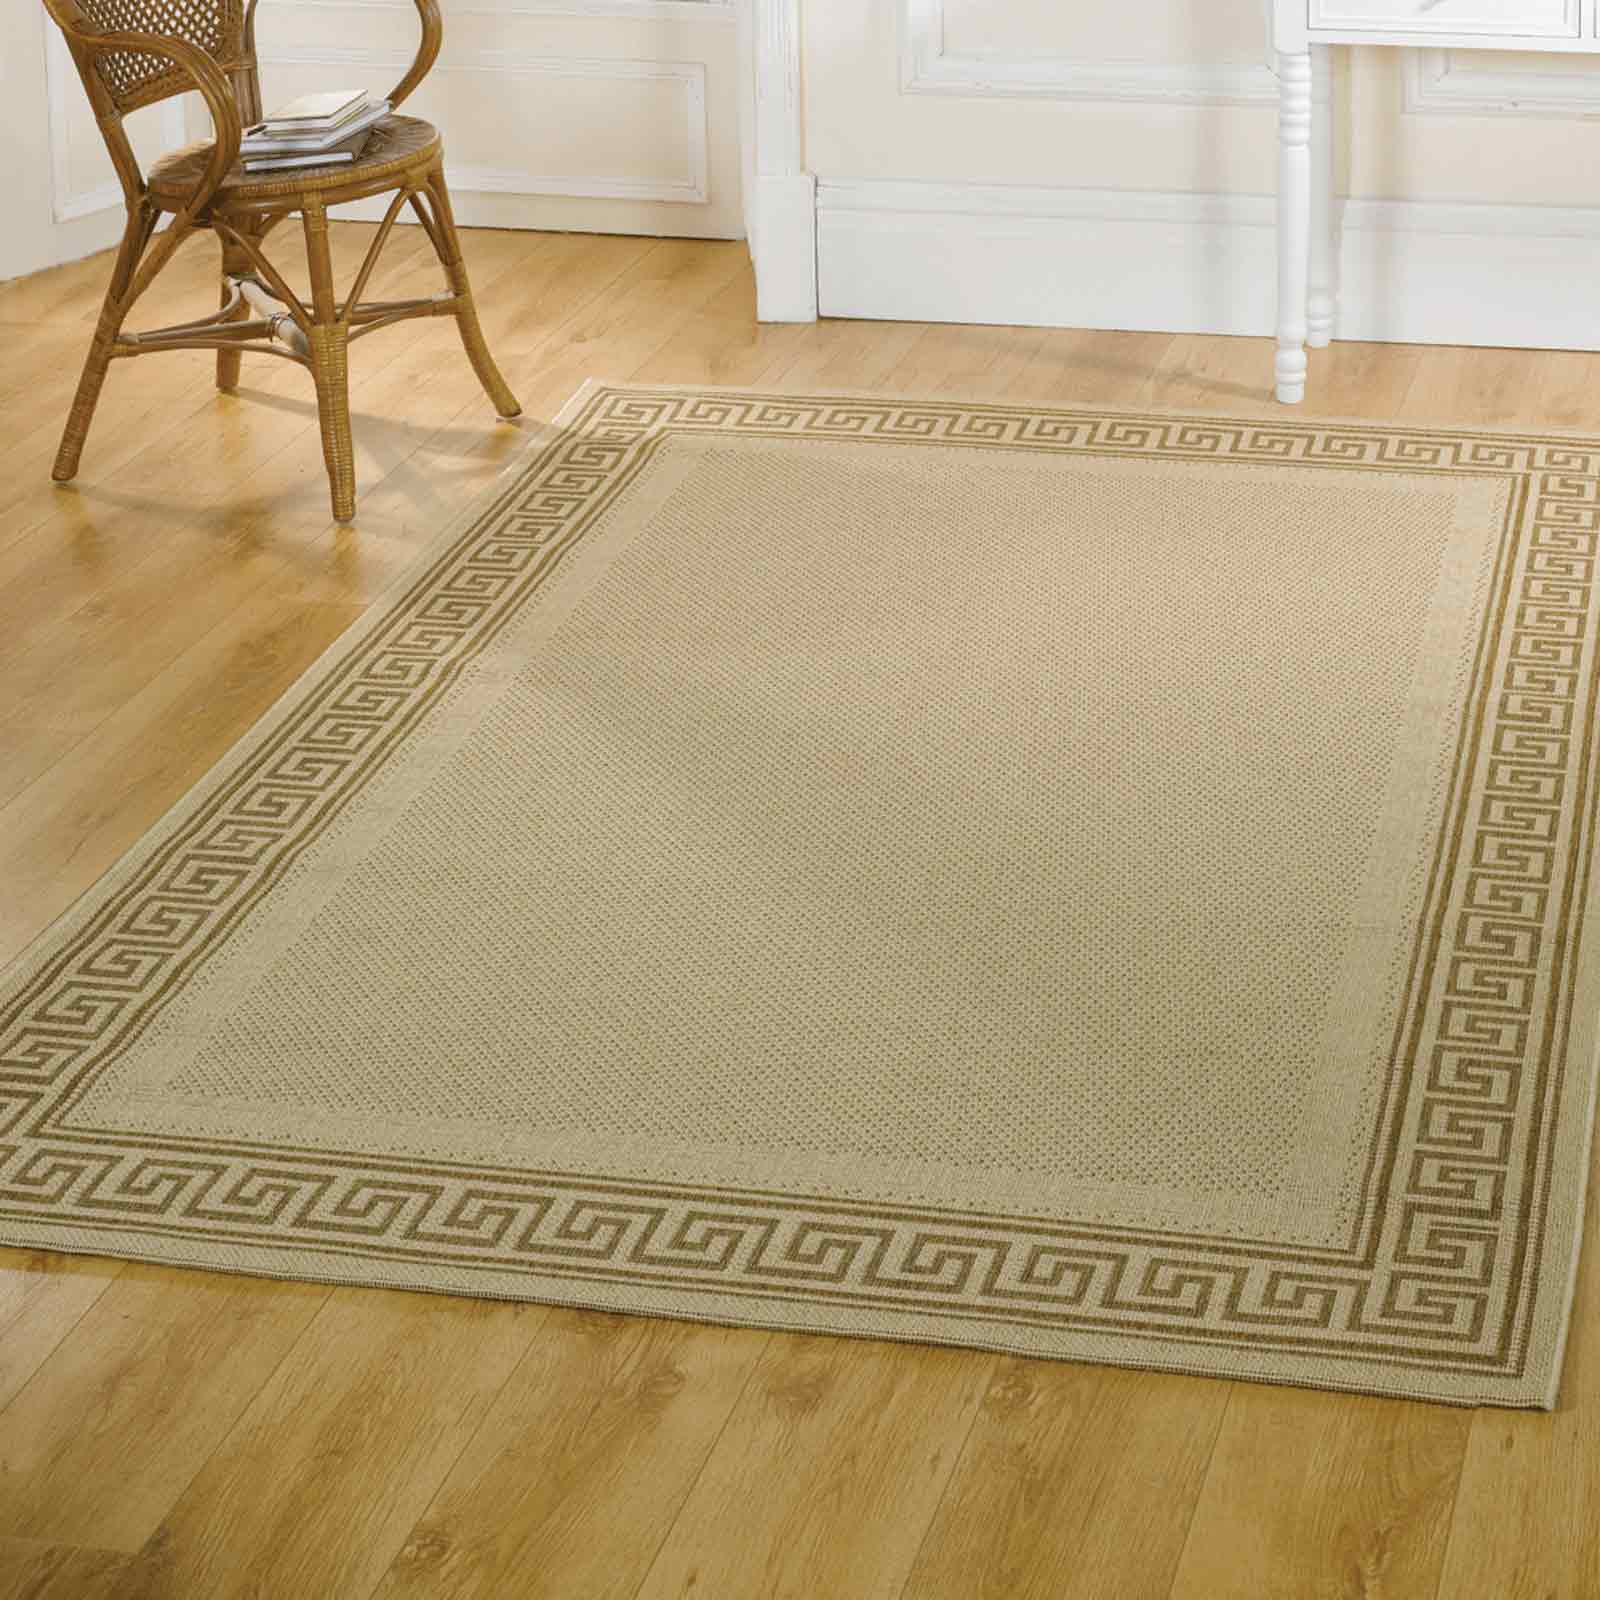 Florence Lorenzo Rugs in Beige